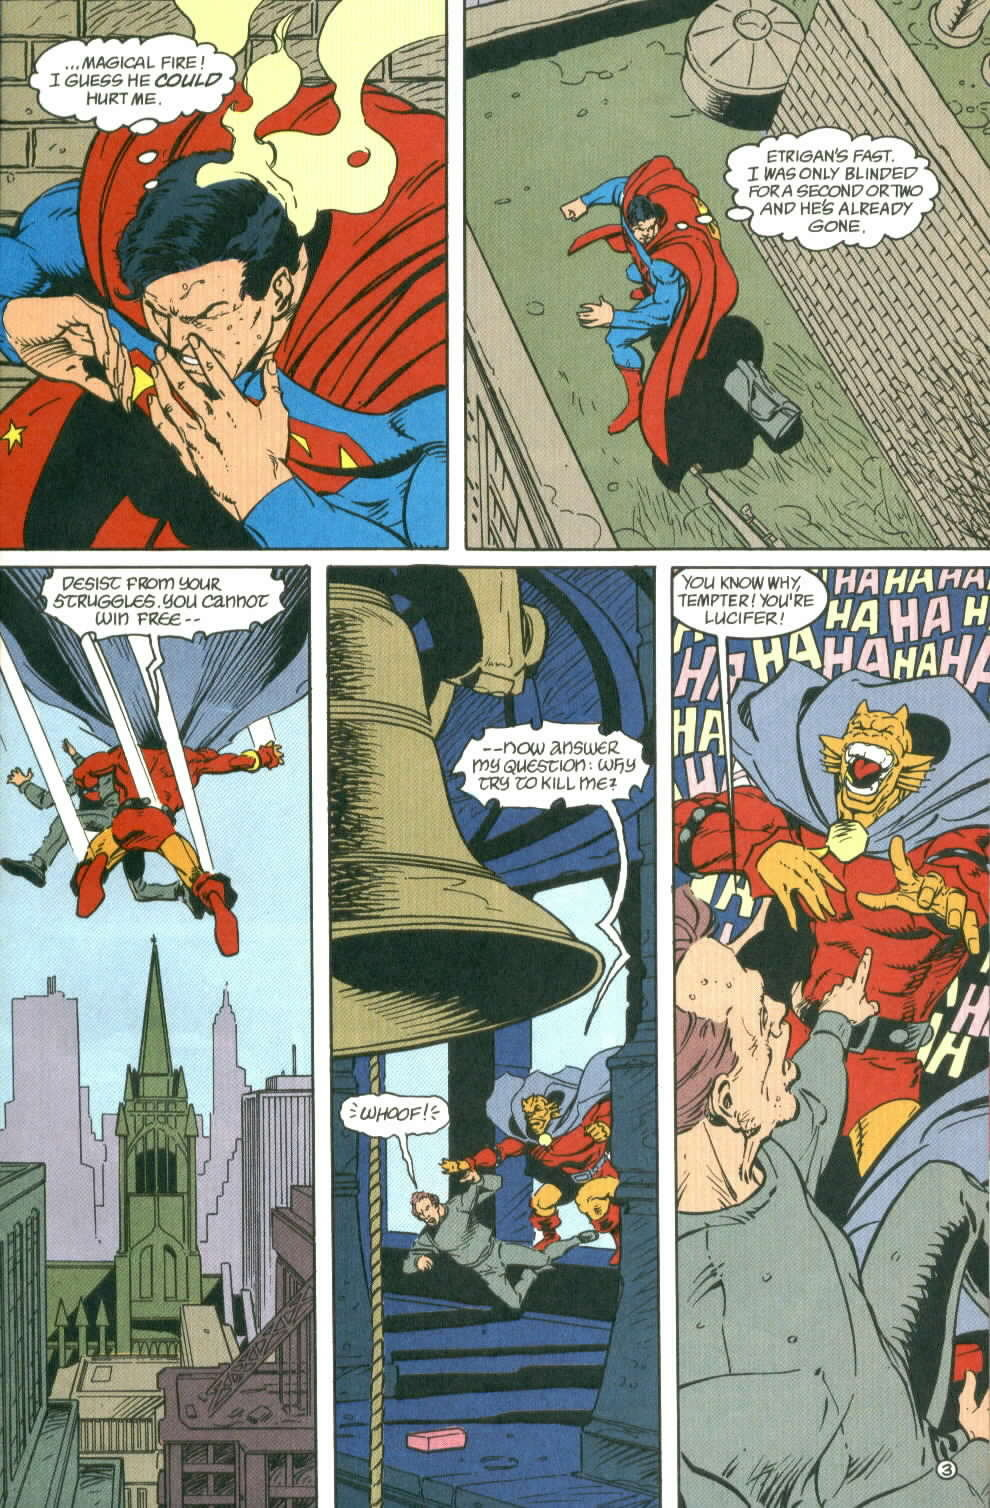 Superman thinks to himself that Etrigan is fast